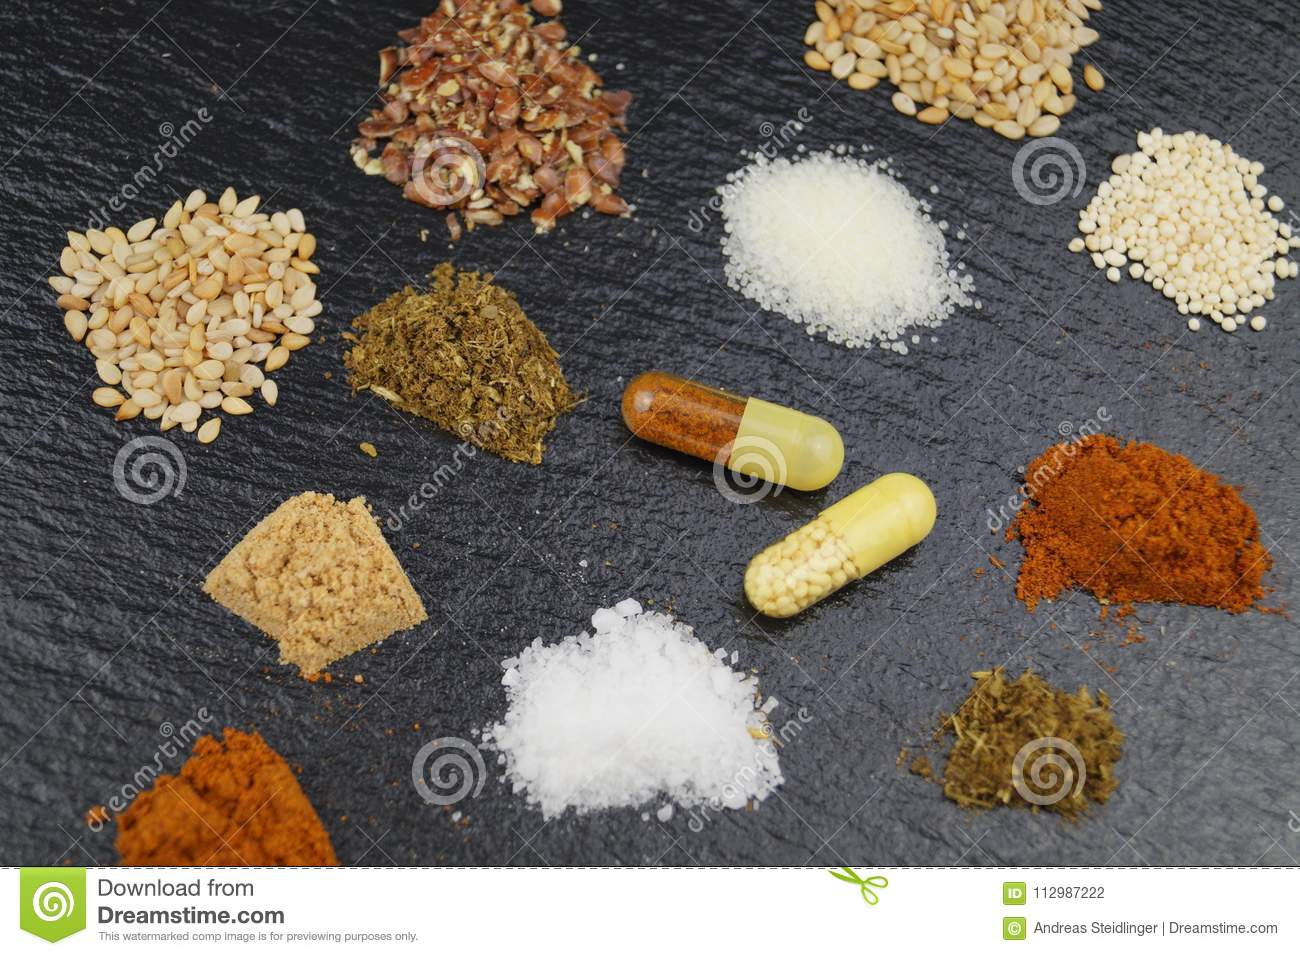 Dietary nutritional supplements